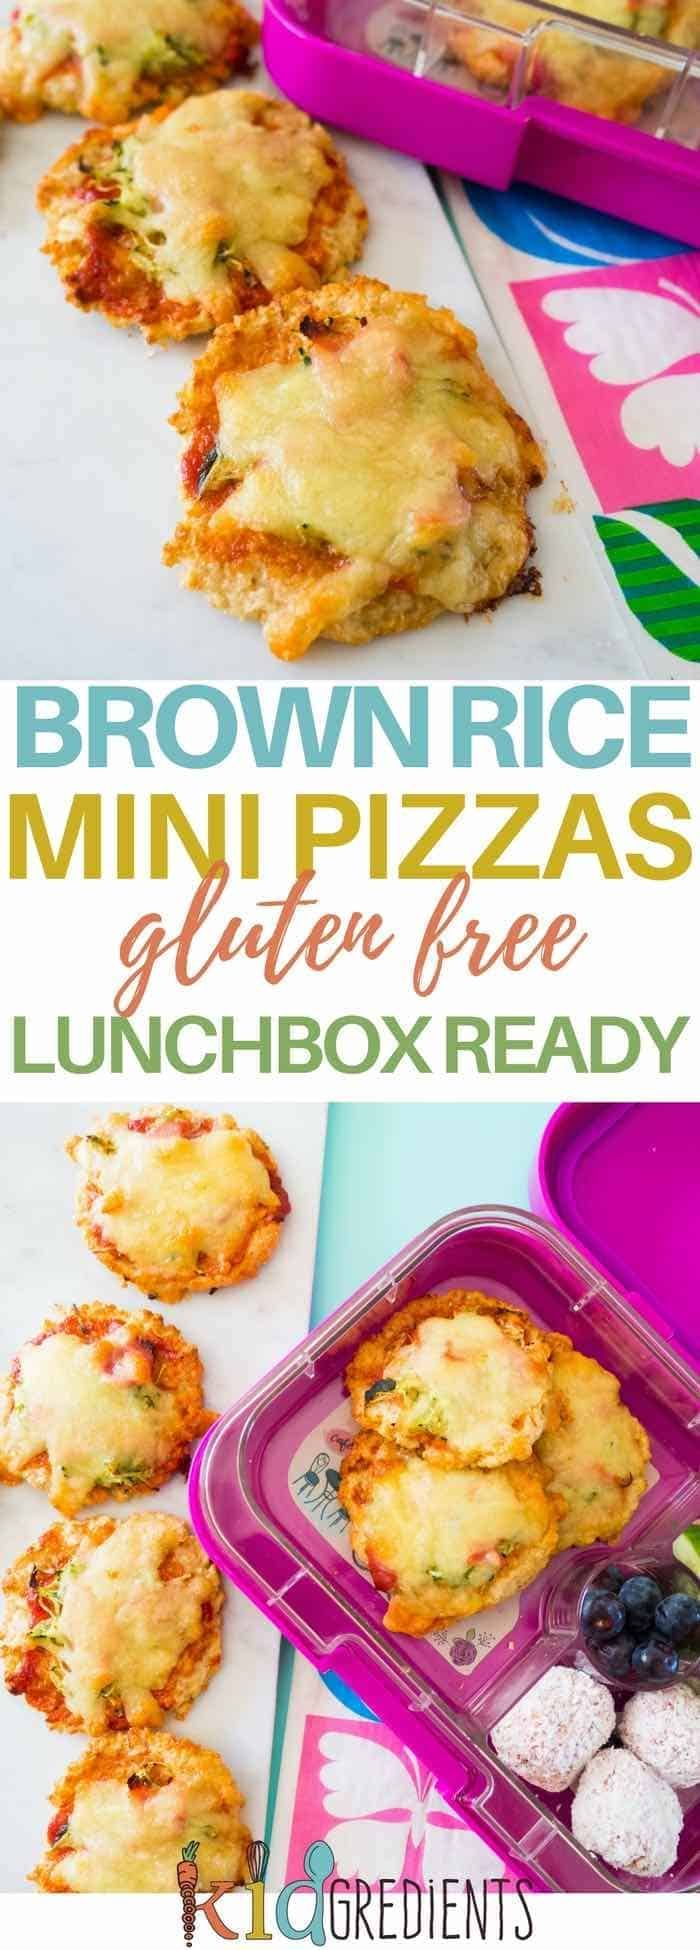 Brown rice mini pizzas, gluten free, easy to make and freezer friendly. Super yummy and perfect for the lunchbox. #kidsfood #glutenfree #pizza #healthykidsfood via @kidgredients